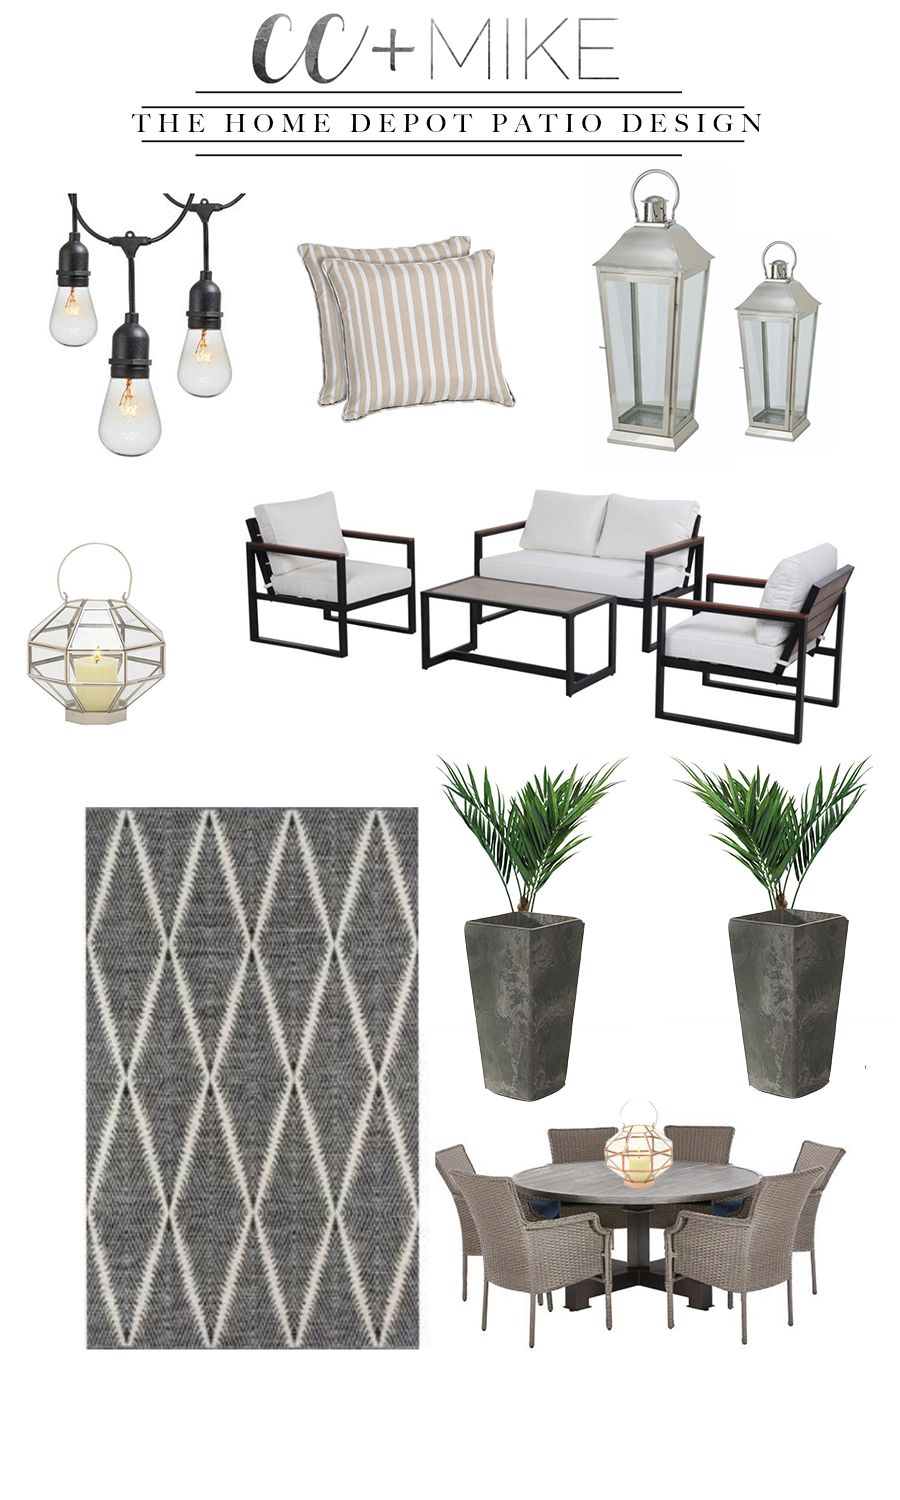 How to Prepare Your Patio for Spring with the Home Depot showcasing a variety of patio decor from rugs to outdoor pillows, lighting and furniture